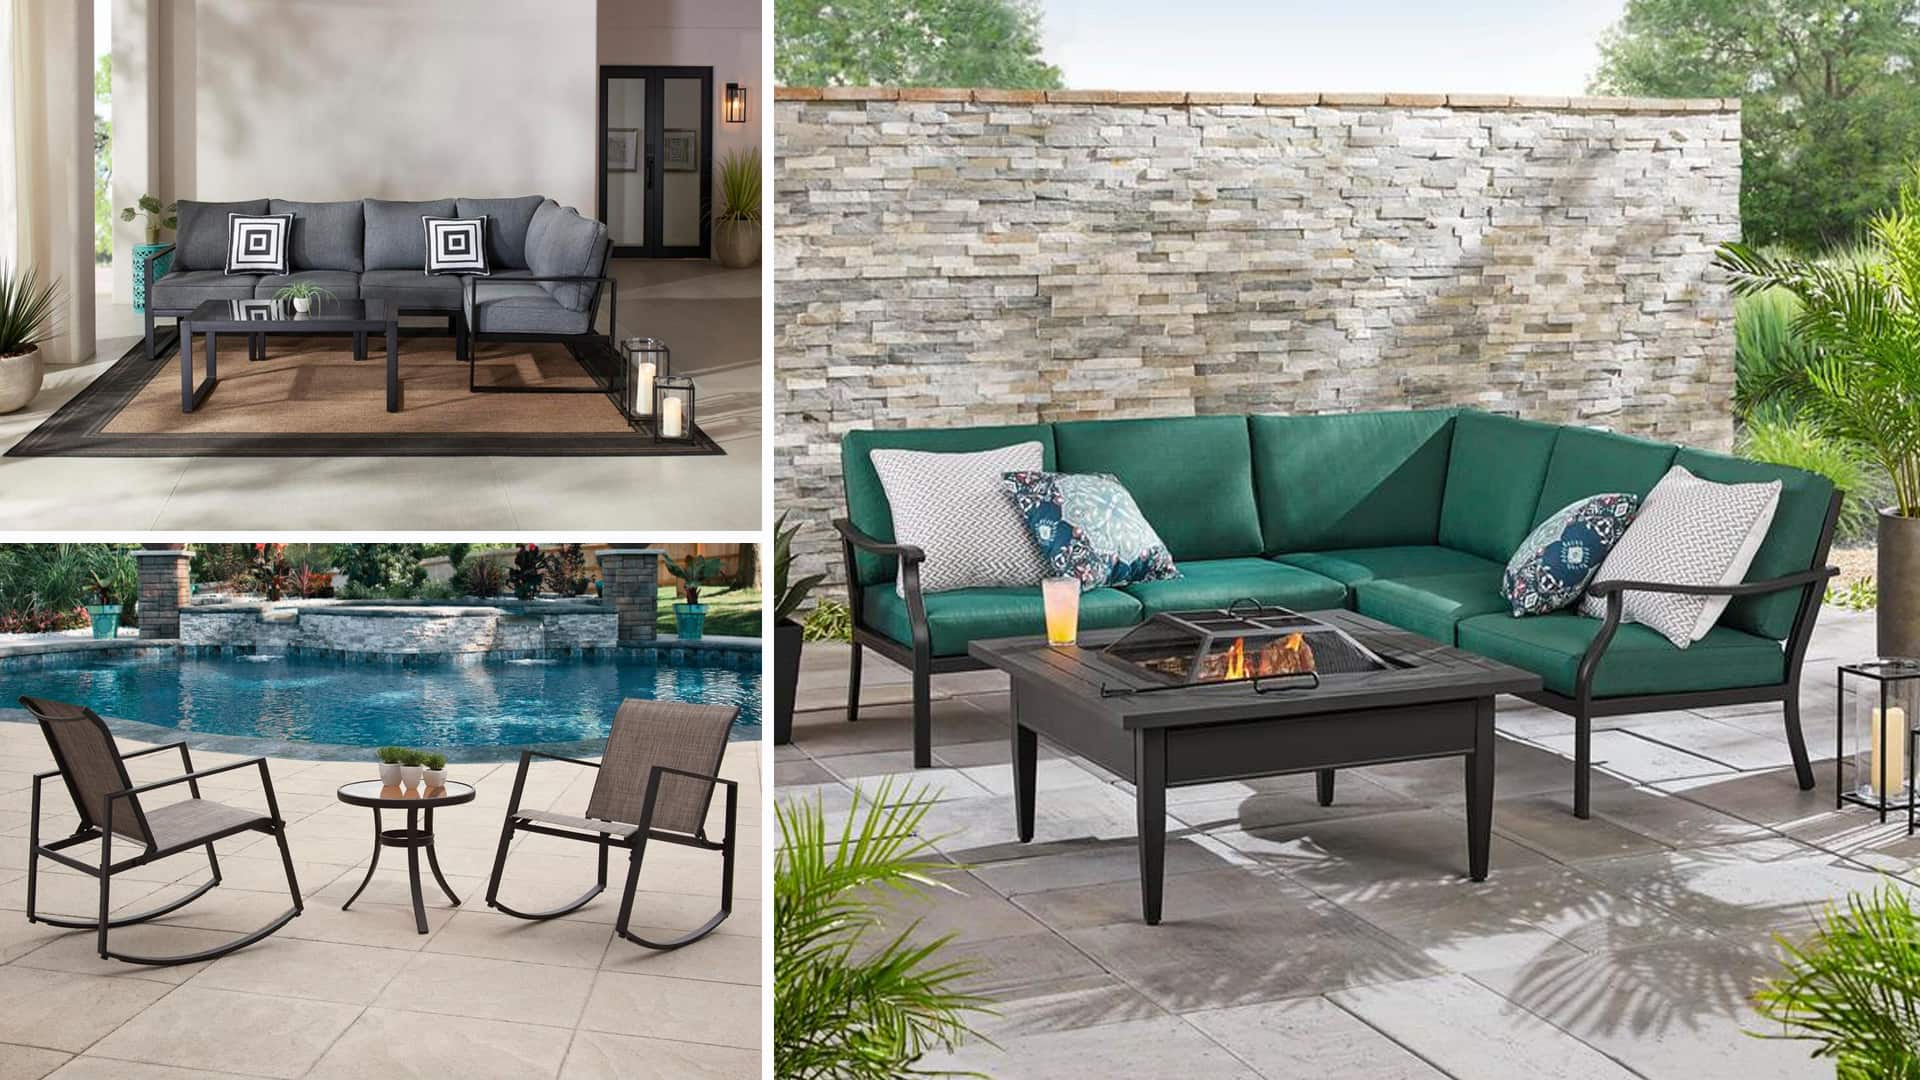 Affordable Patio Sets From Home Depot That You Ll Love